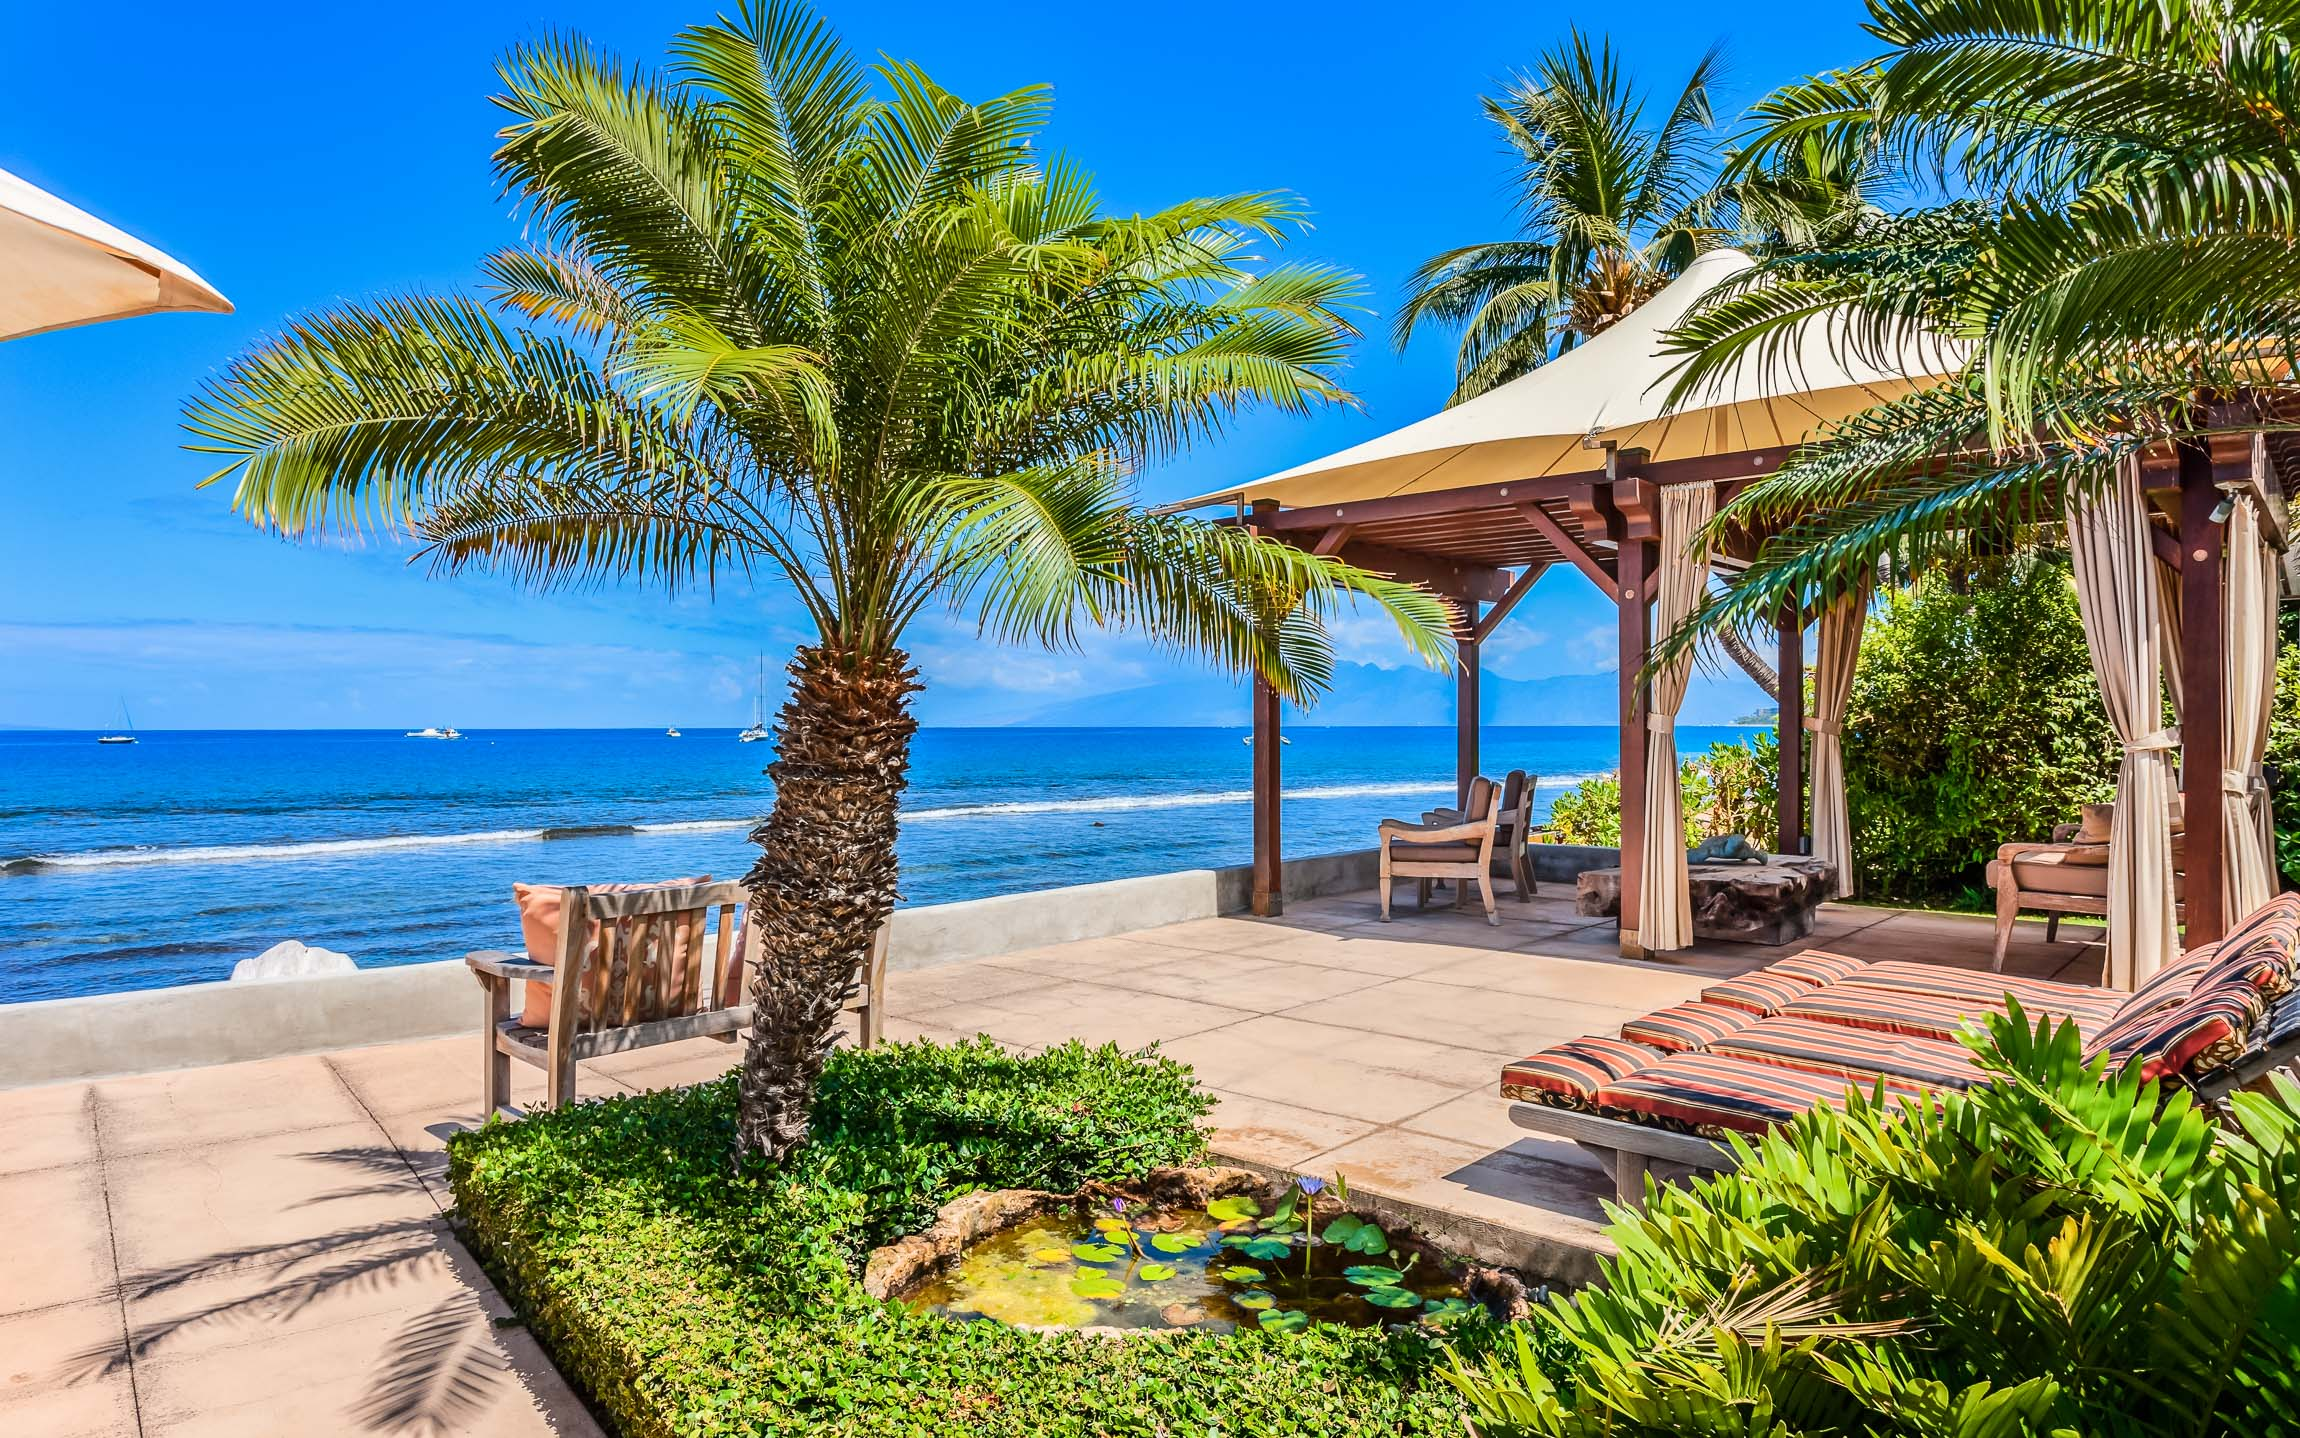 Why Maui Hawaii Is The Perfect Tropical Destination